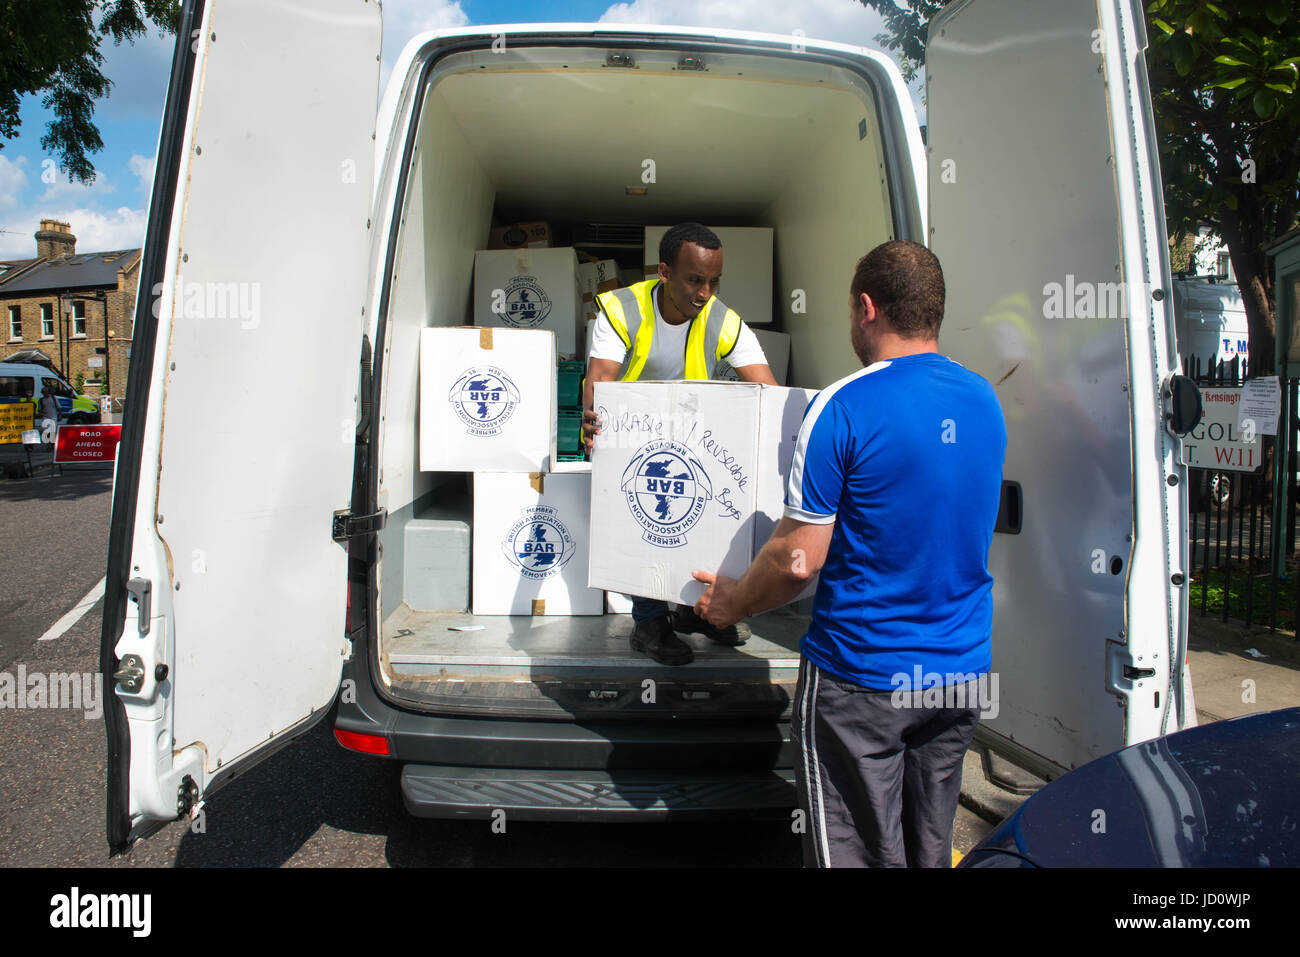 London, United Kingdom. 17th June 2017. Volunteers help distribute items to help those affected by the fire at Grenfell - Stock Image